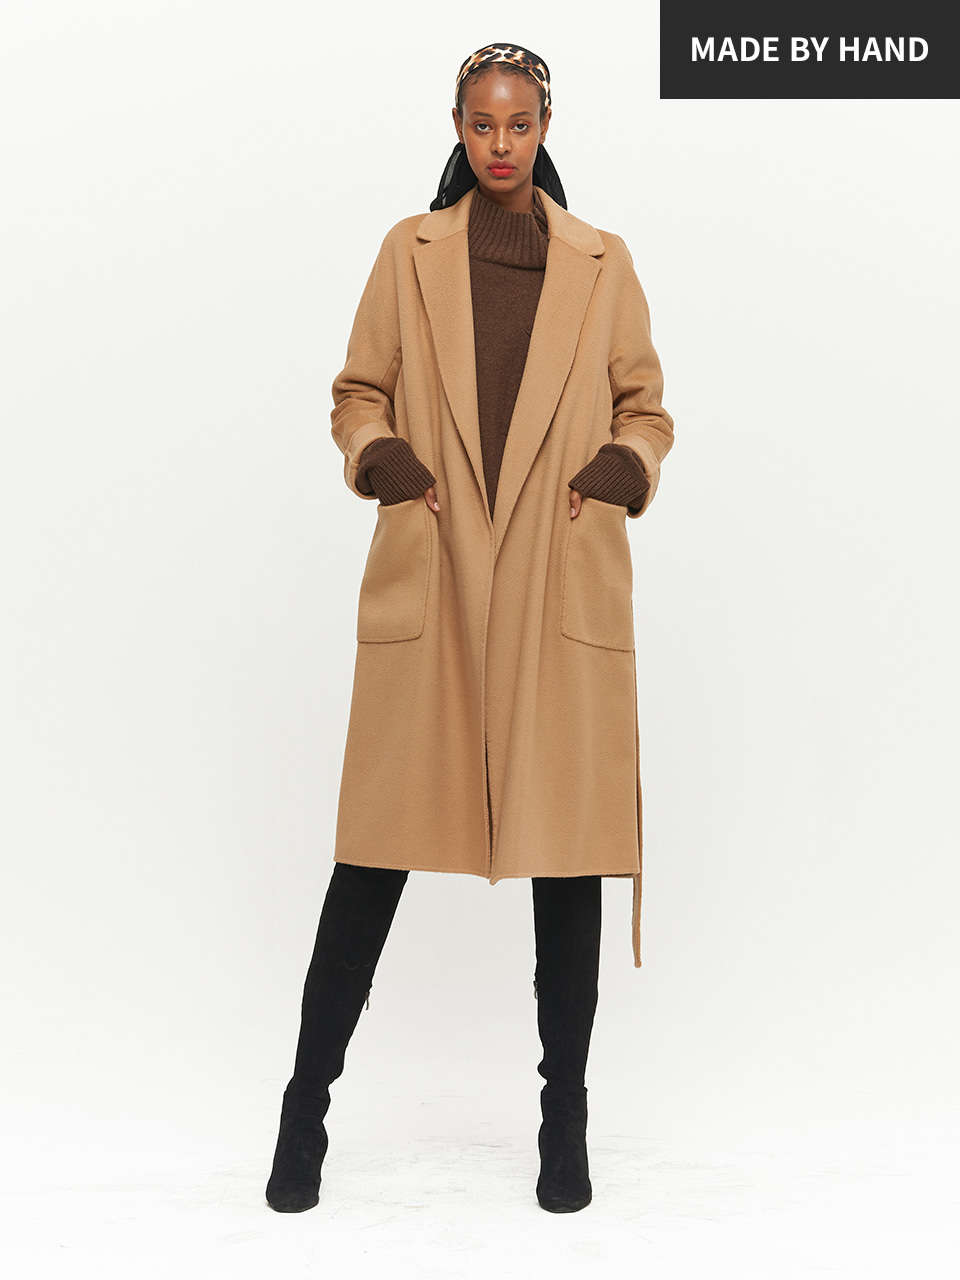 [PREMIUM] AUSTALIAN WOOL HANDMADE LONG COAT